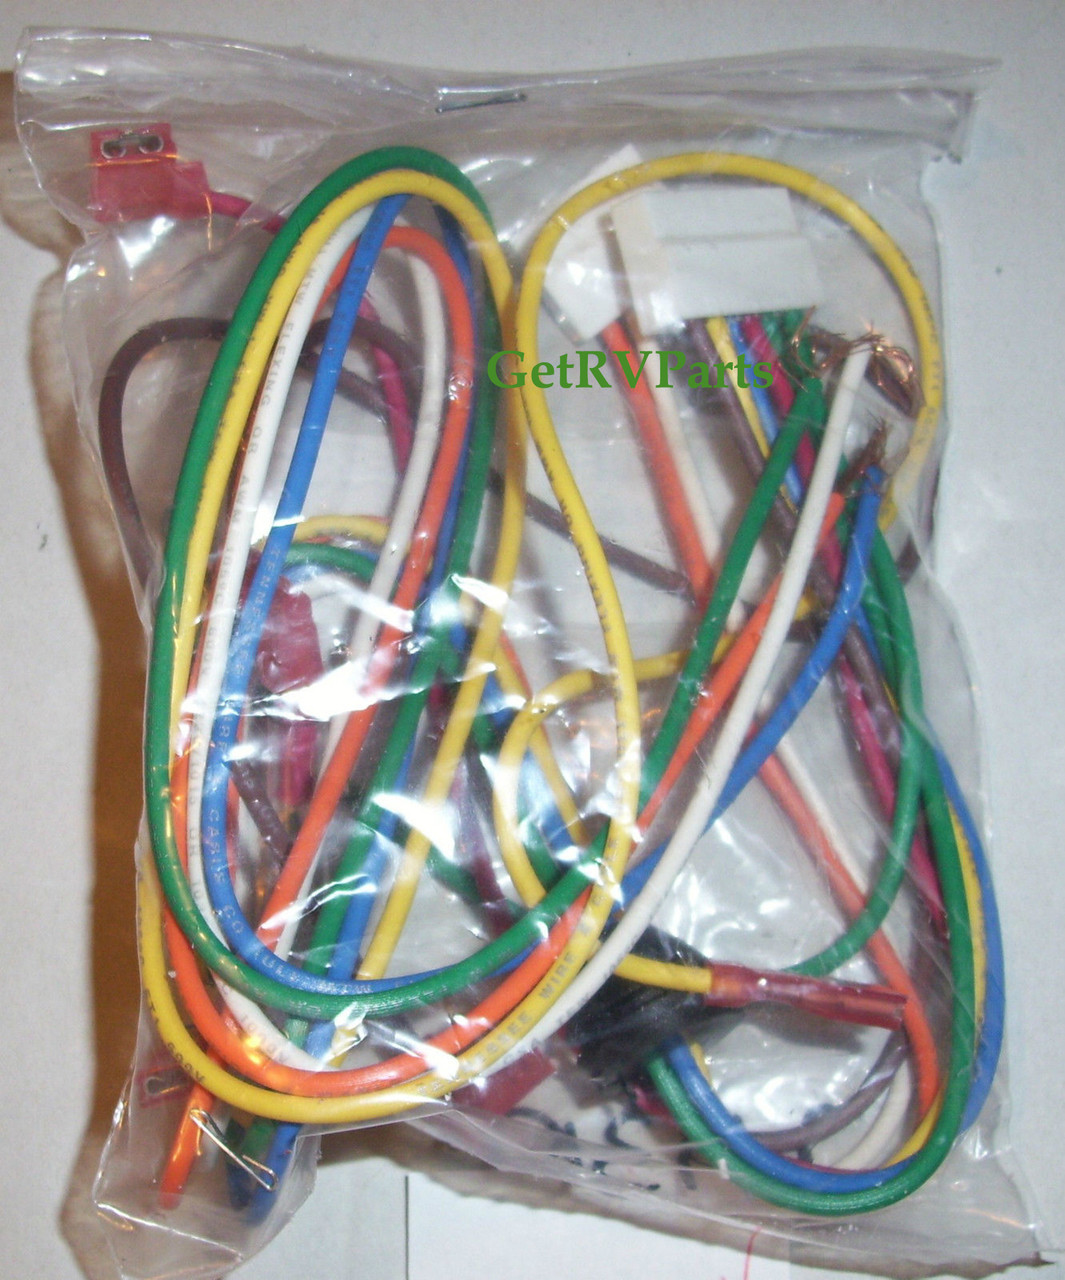 atwood water 93315 heater wire harness was 93191 image 1 loading zoom [ 1065 x 1280 Pixel ]